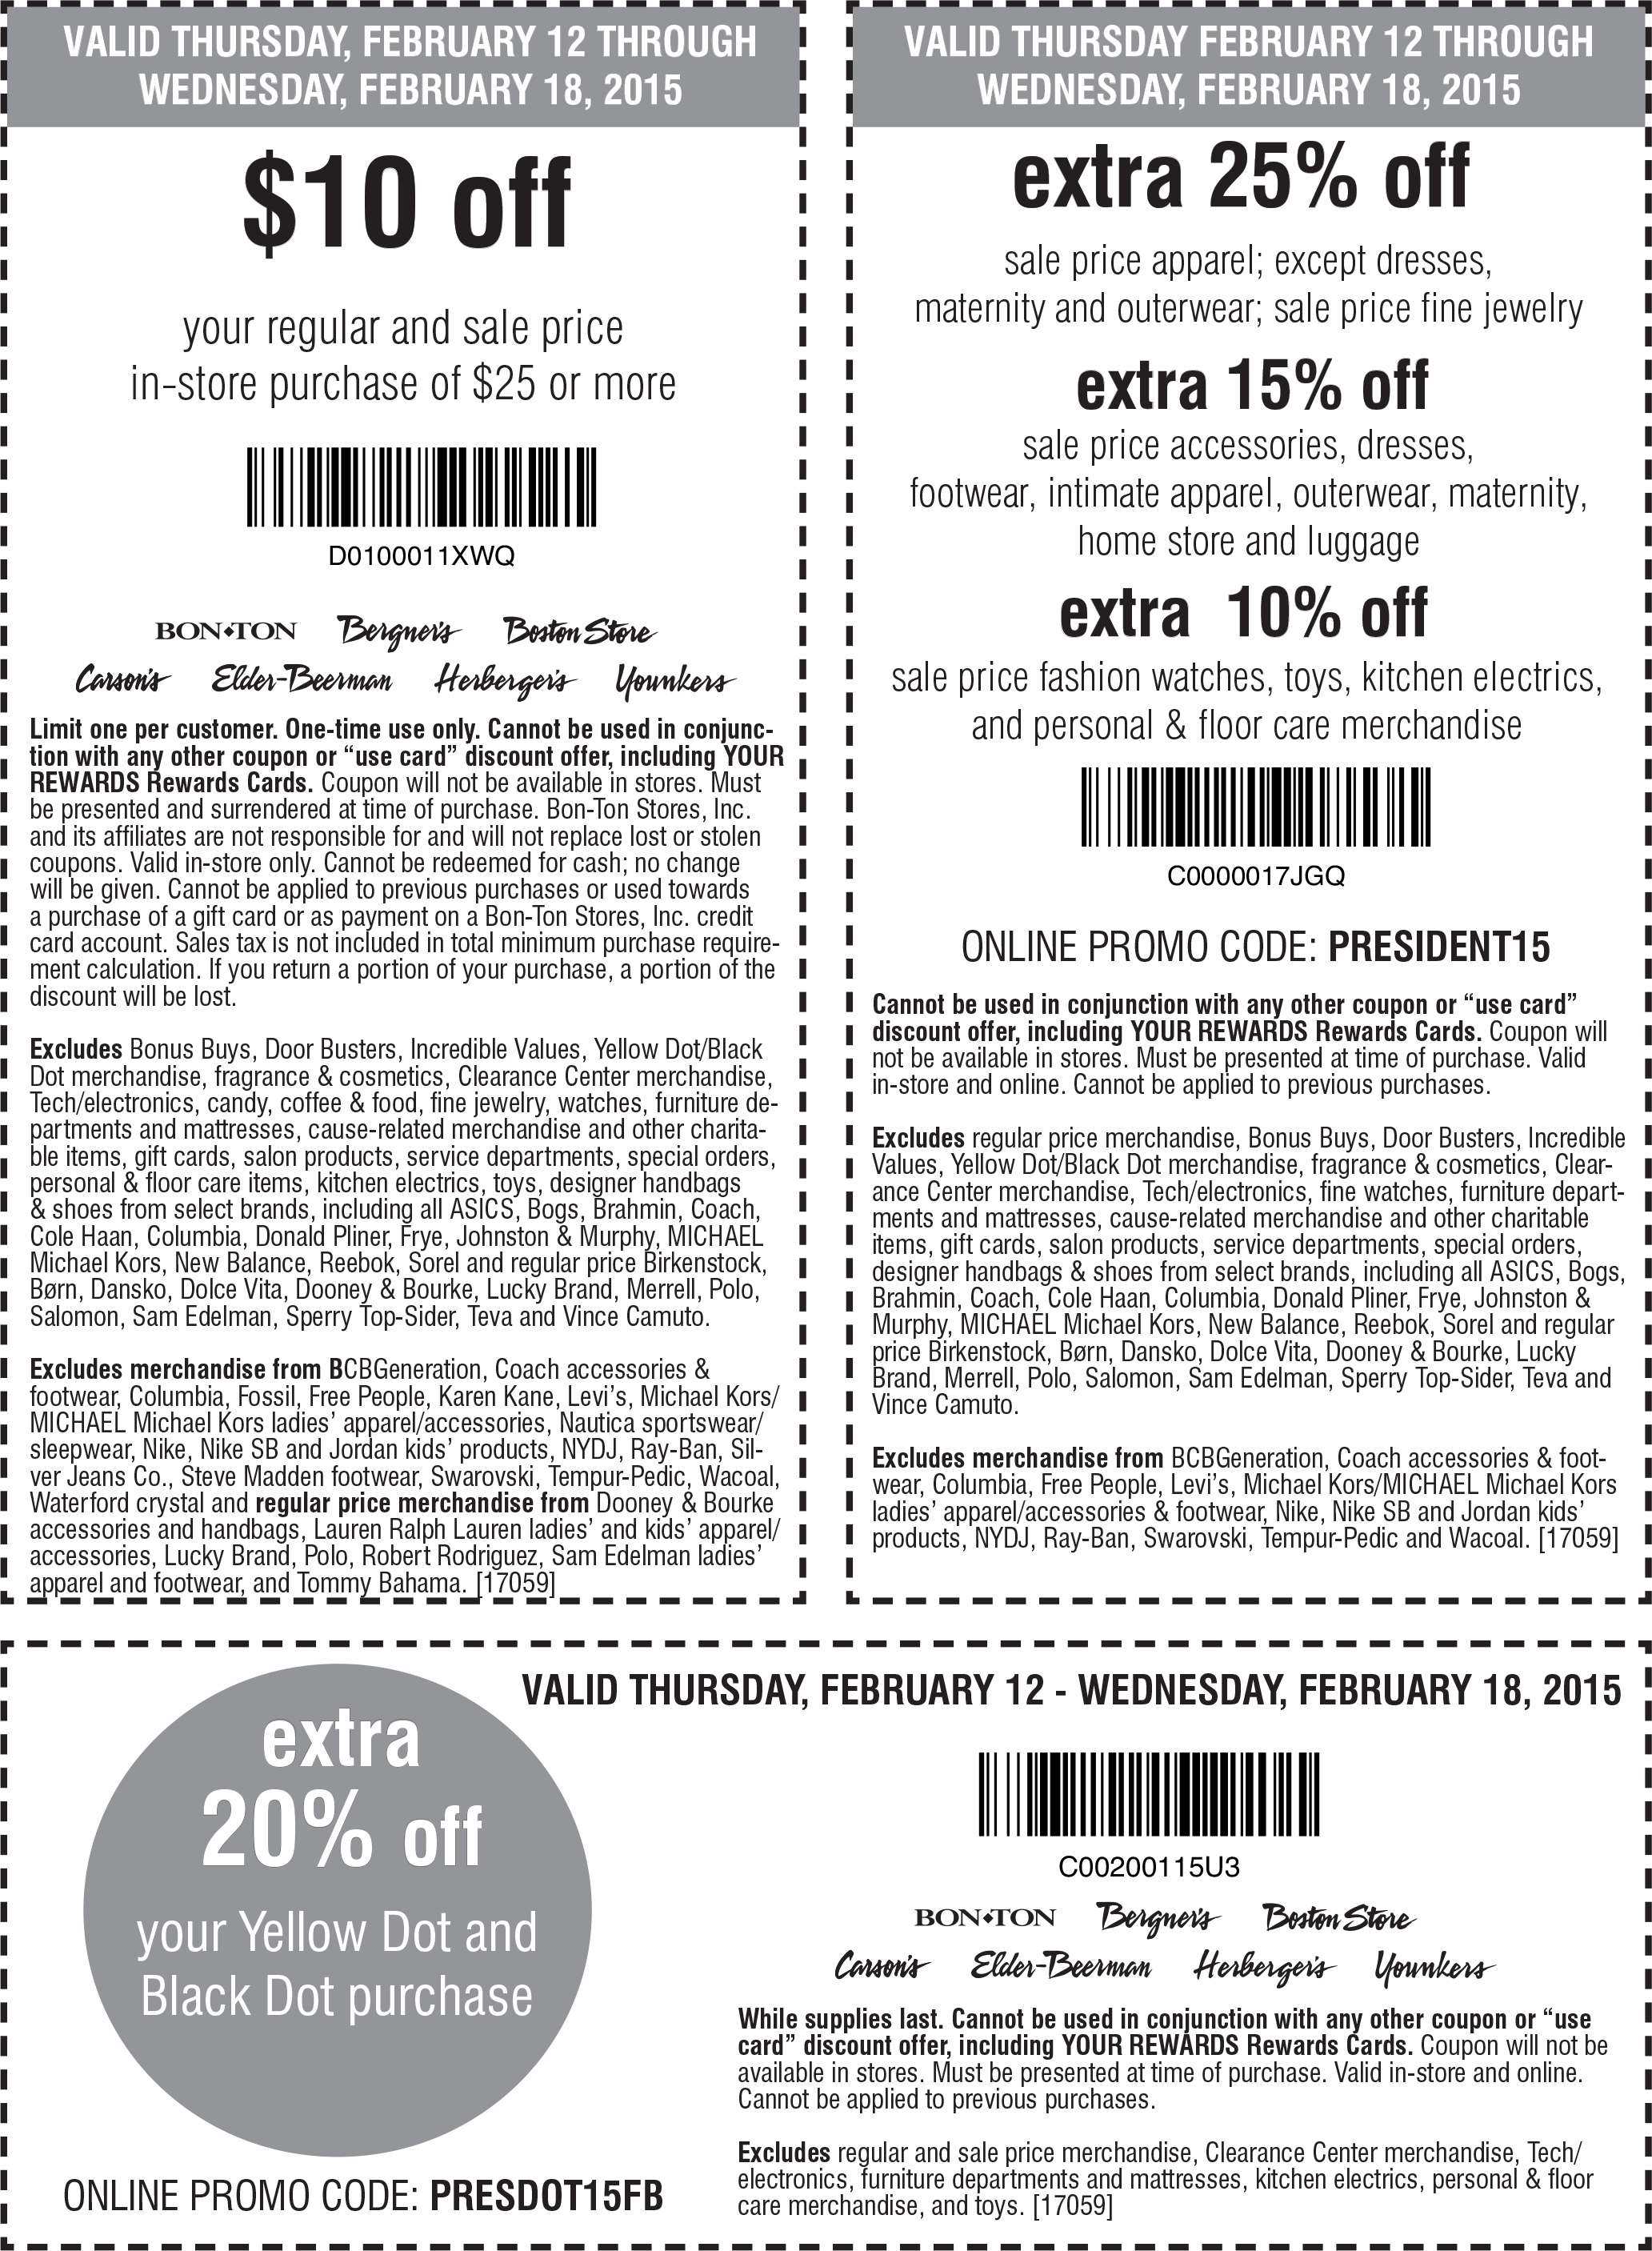 Carsons Coupon December 2016 $10 off $25 & more at Carsons, Bon Ton & sister stores, or 25% off sale apparel online via promo code PRESIDENT15